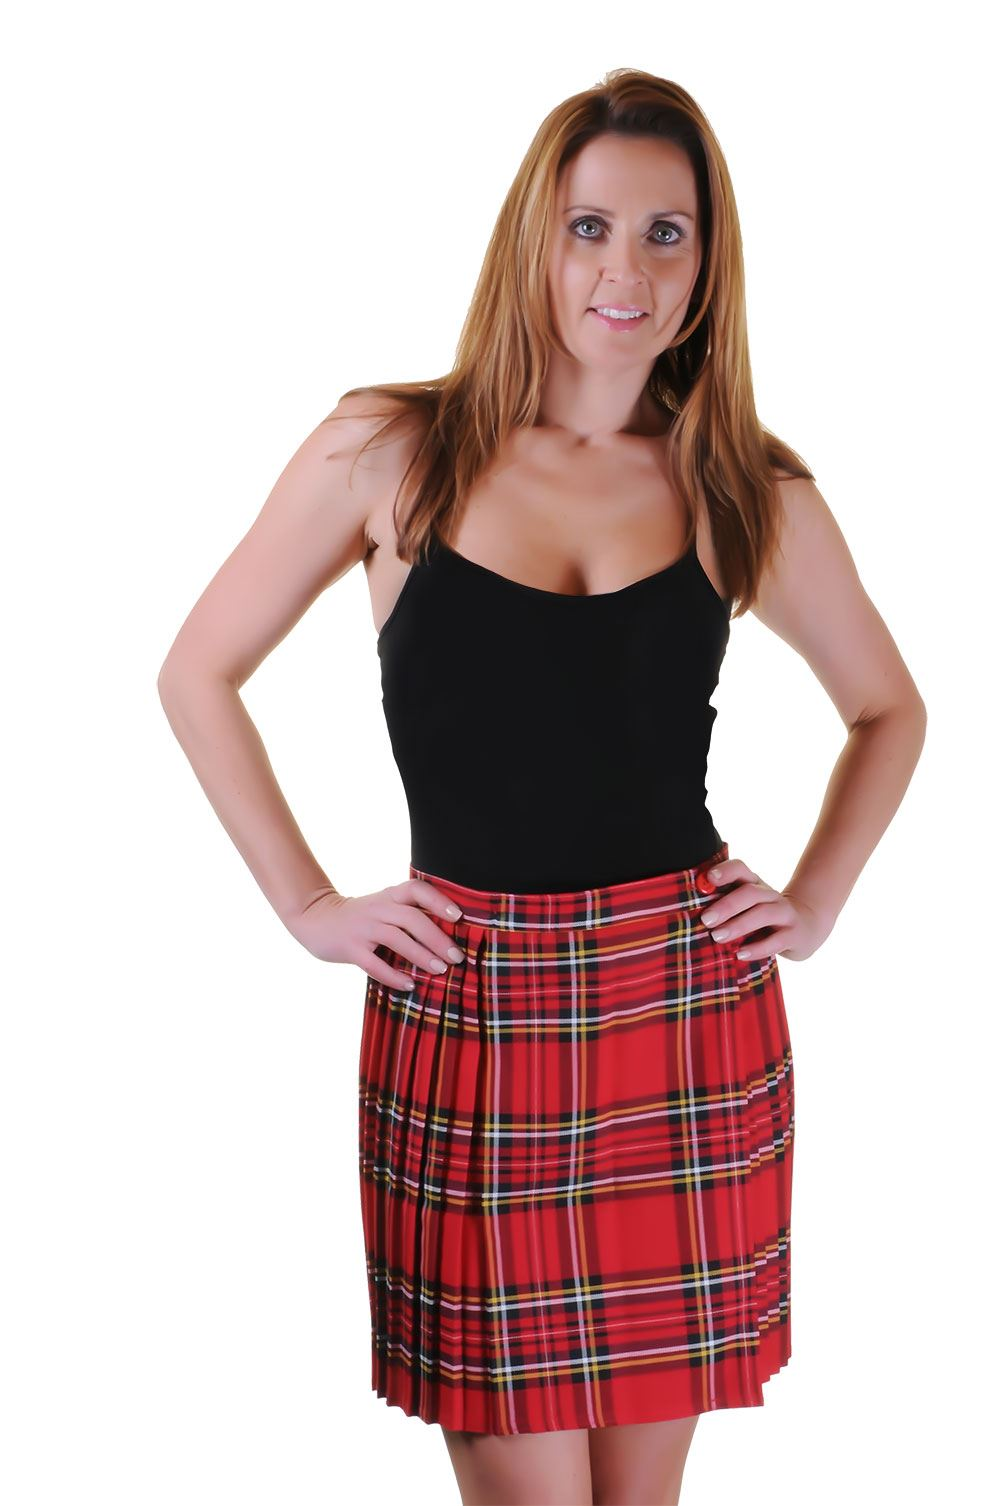 Find great deals on eBay for red tartan skirt. Shop with confidence.